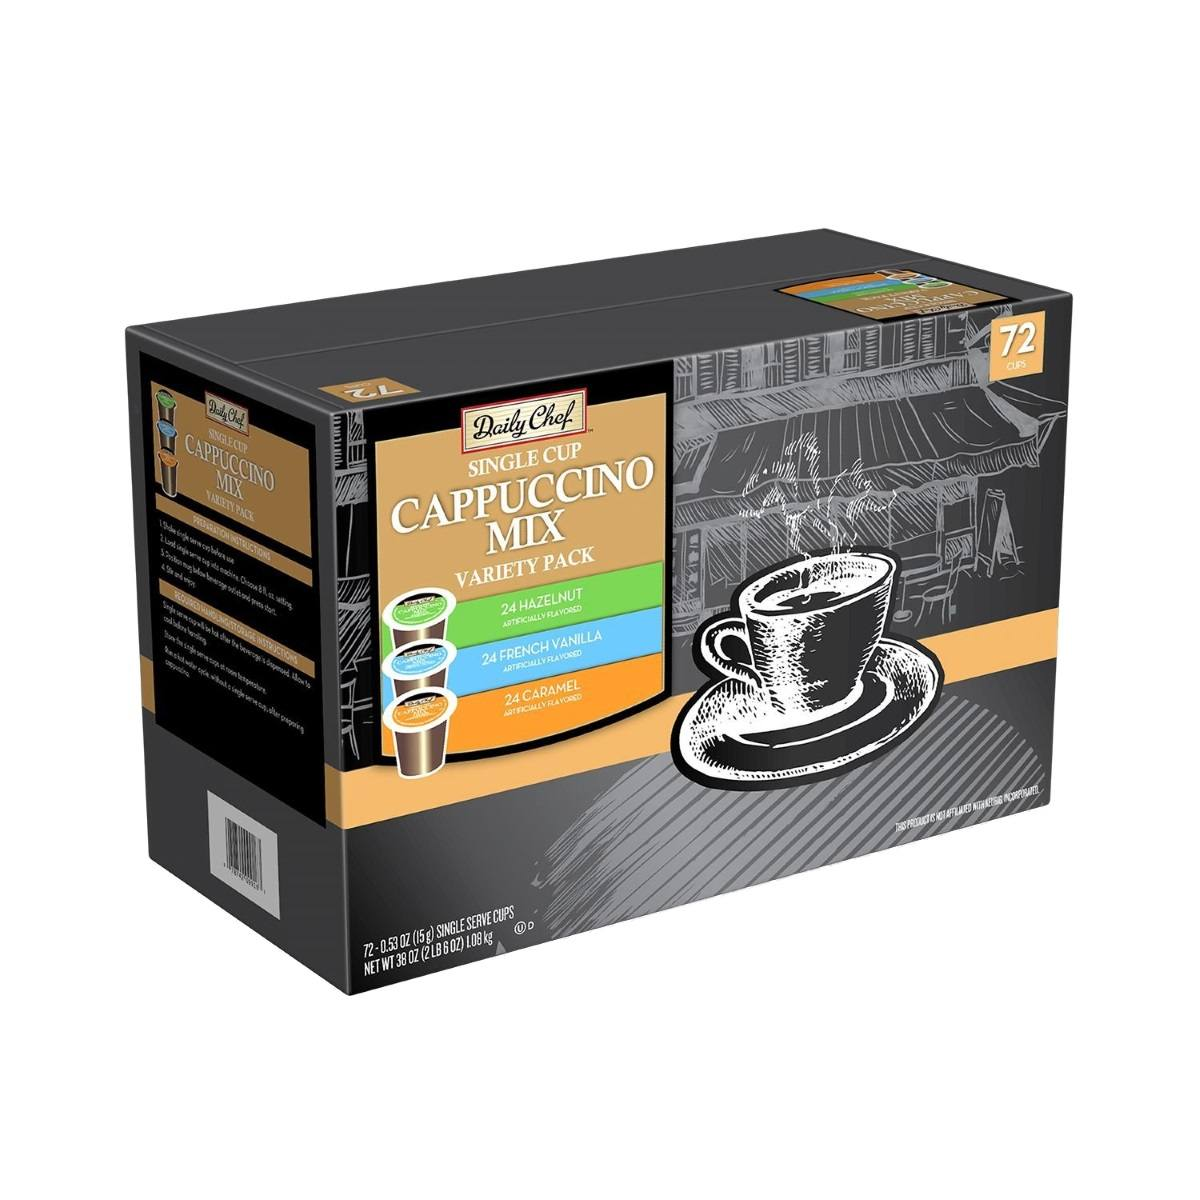 daily chef cappuccino single serve coffee variety pack 72 kcups